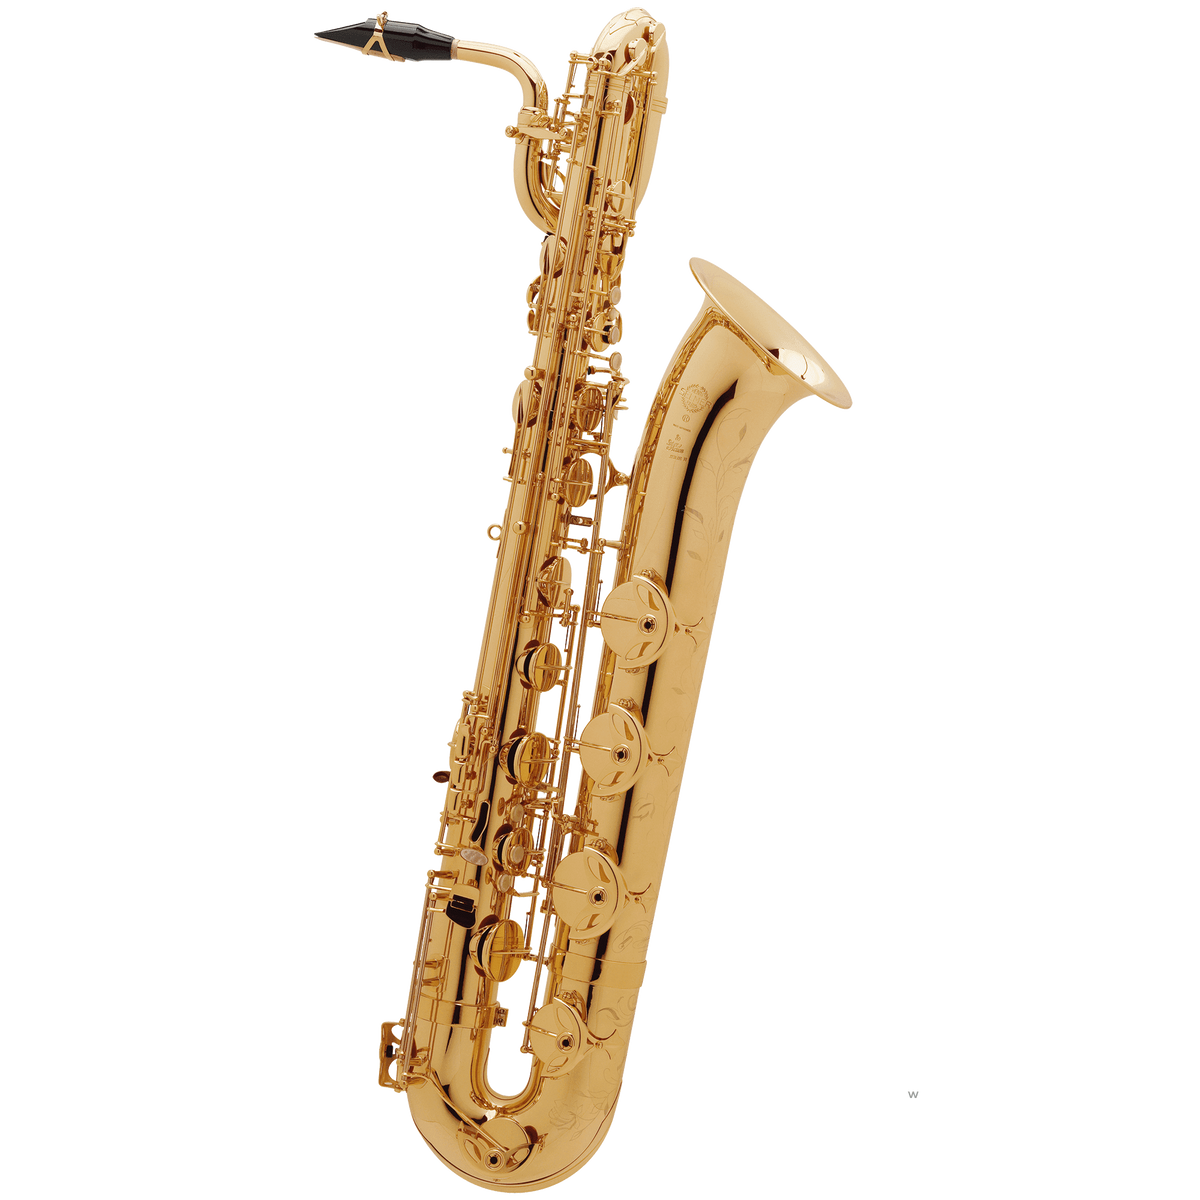 Selmer Paris - Super Action 80 Series II Jubilee Baritone Saxophone (Gold Lacquer)